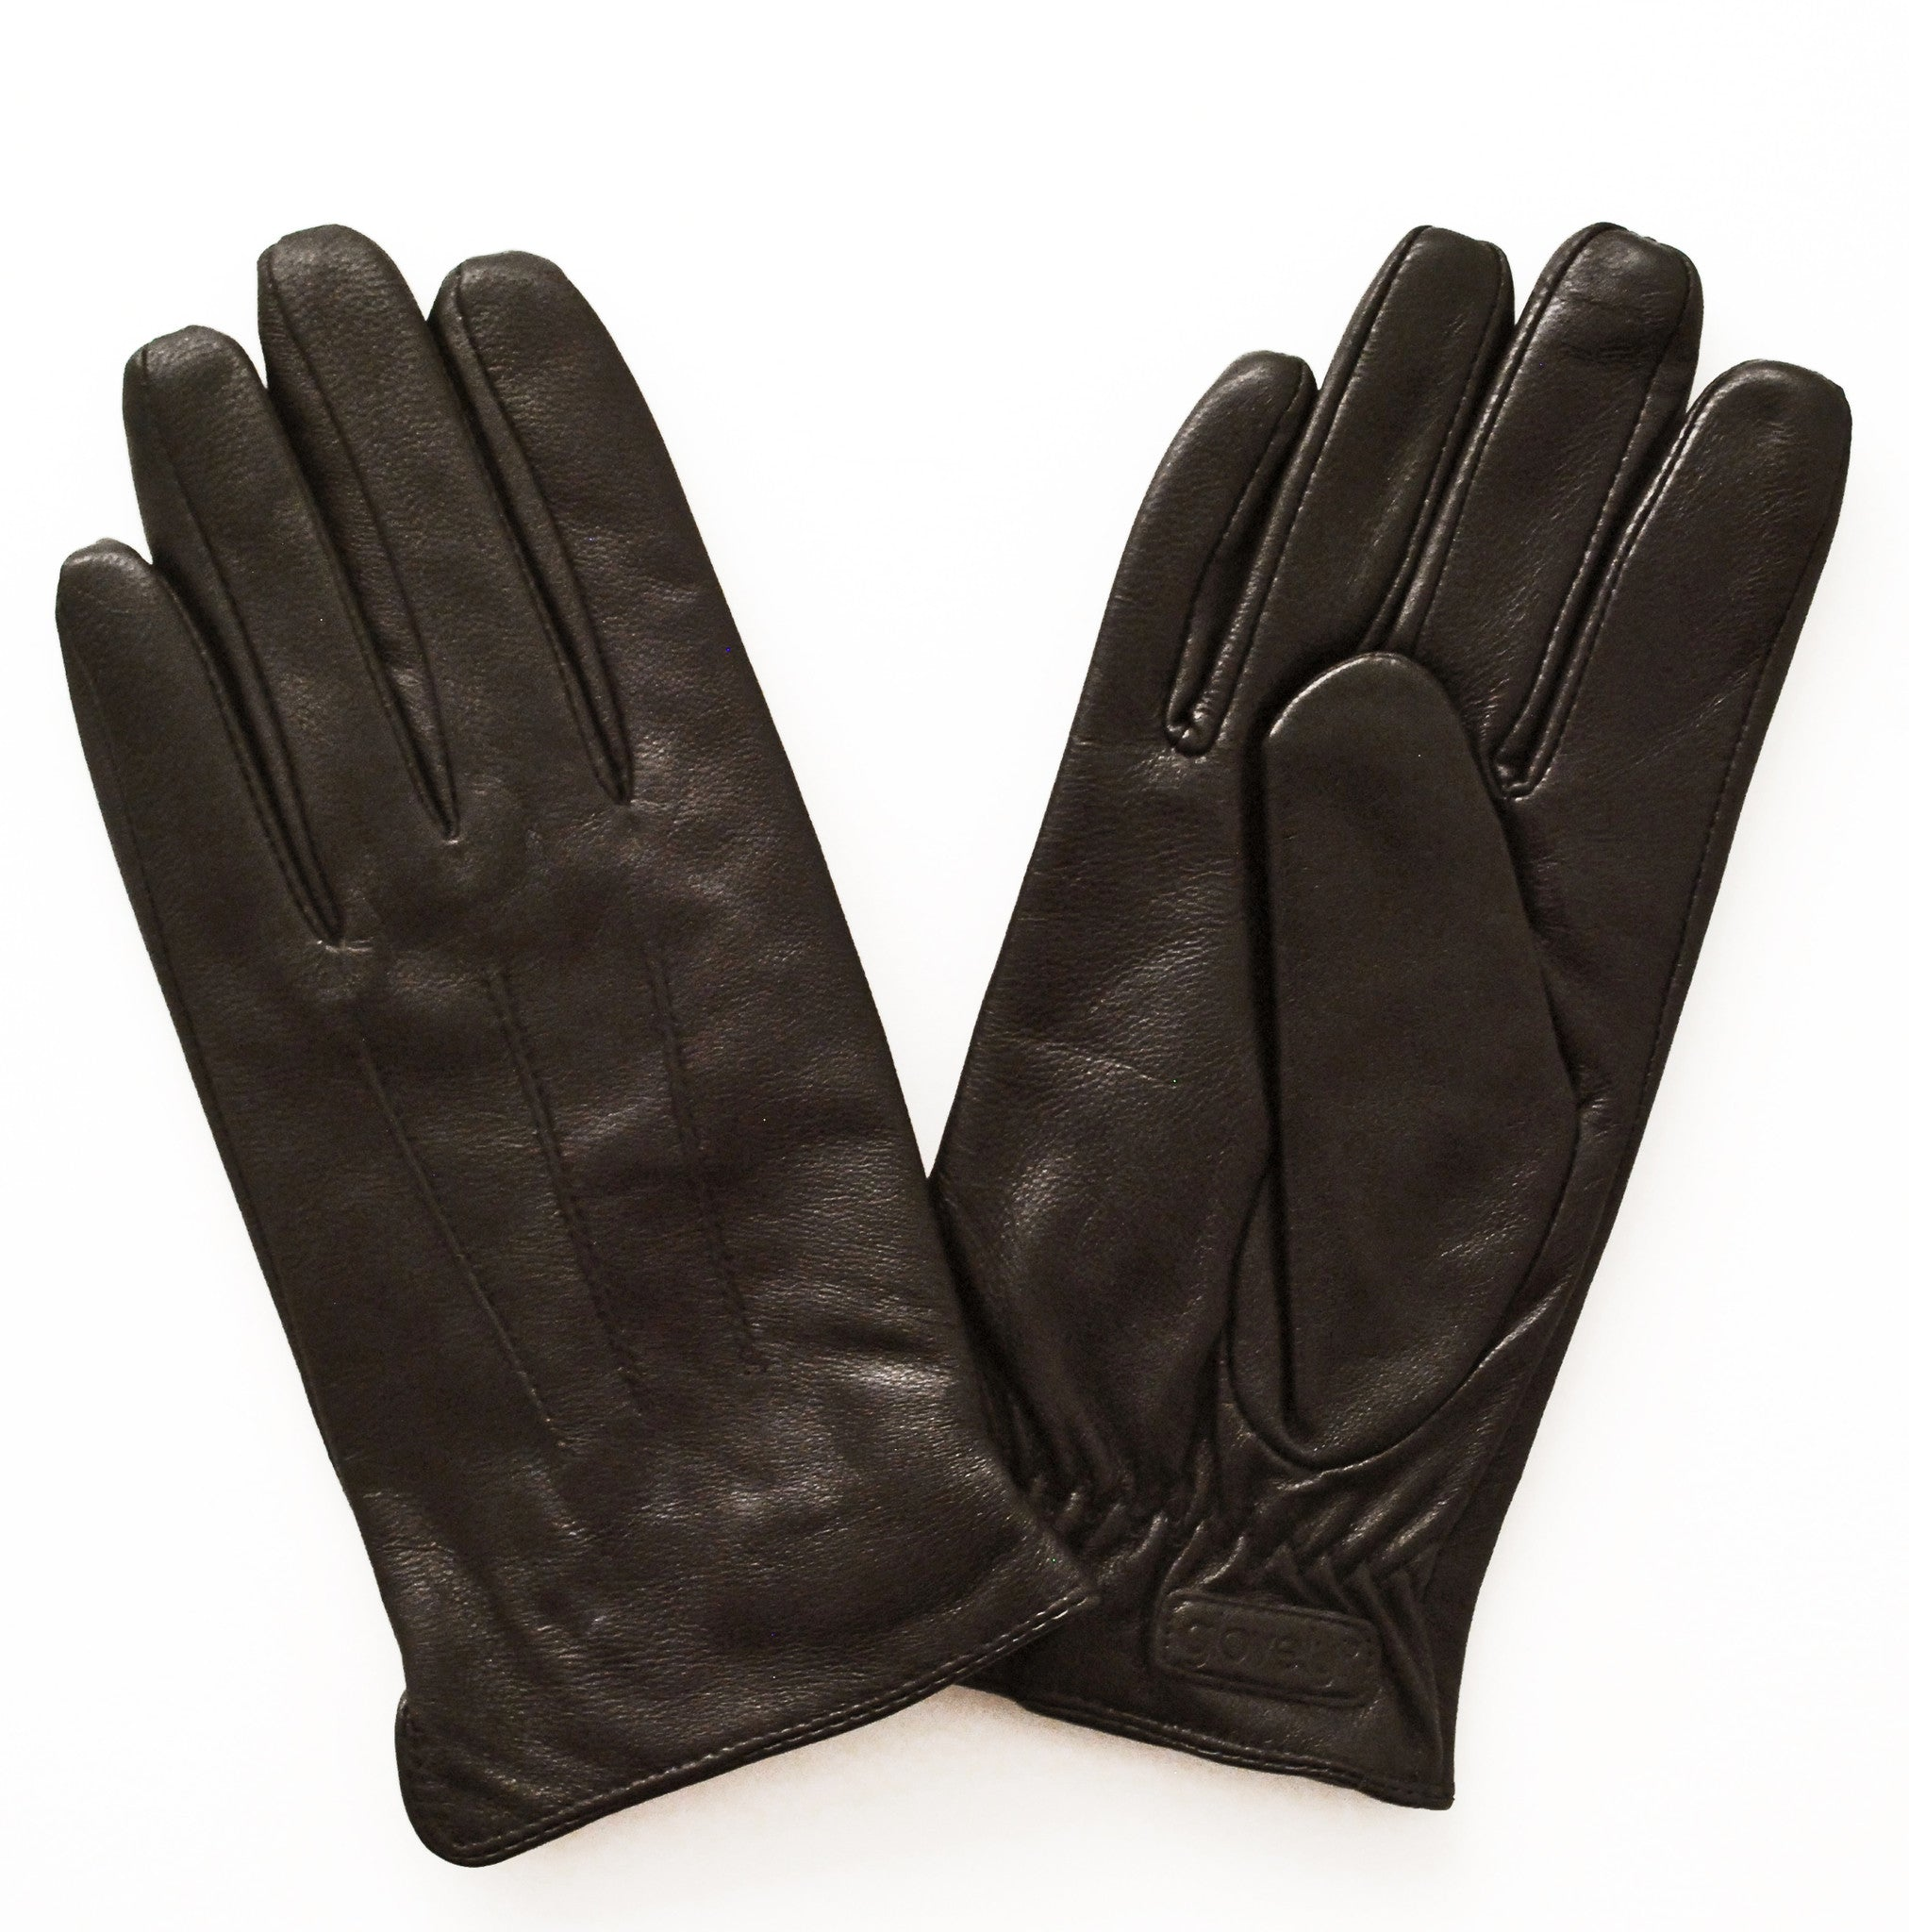 Womens leather touchscreen gloves -  Women S Classic Leather Touch Screen Glove Brown